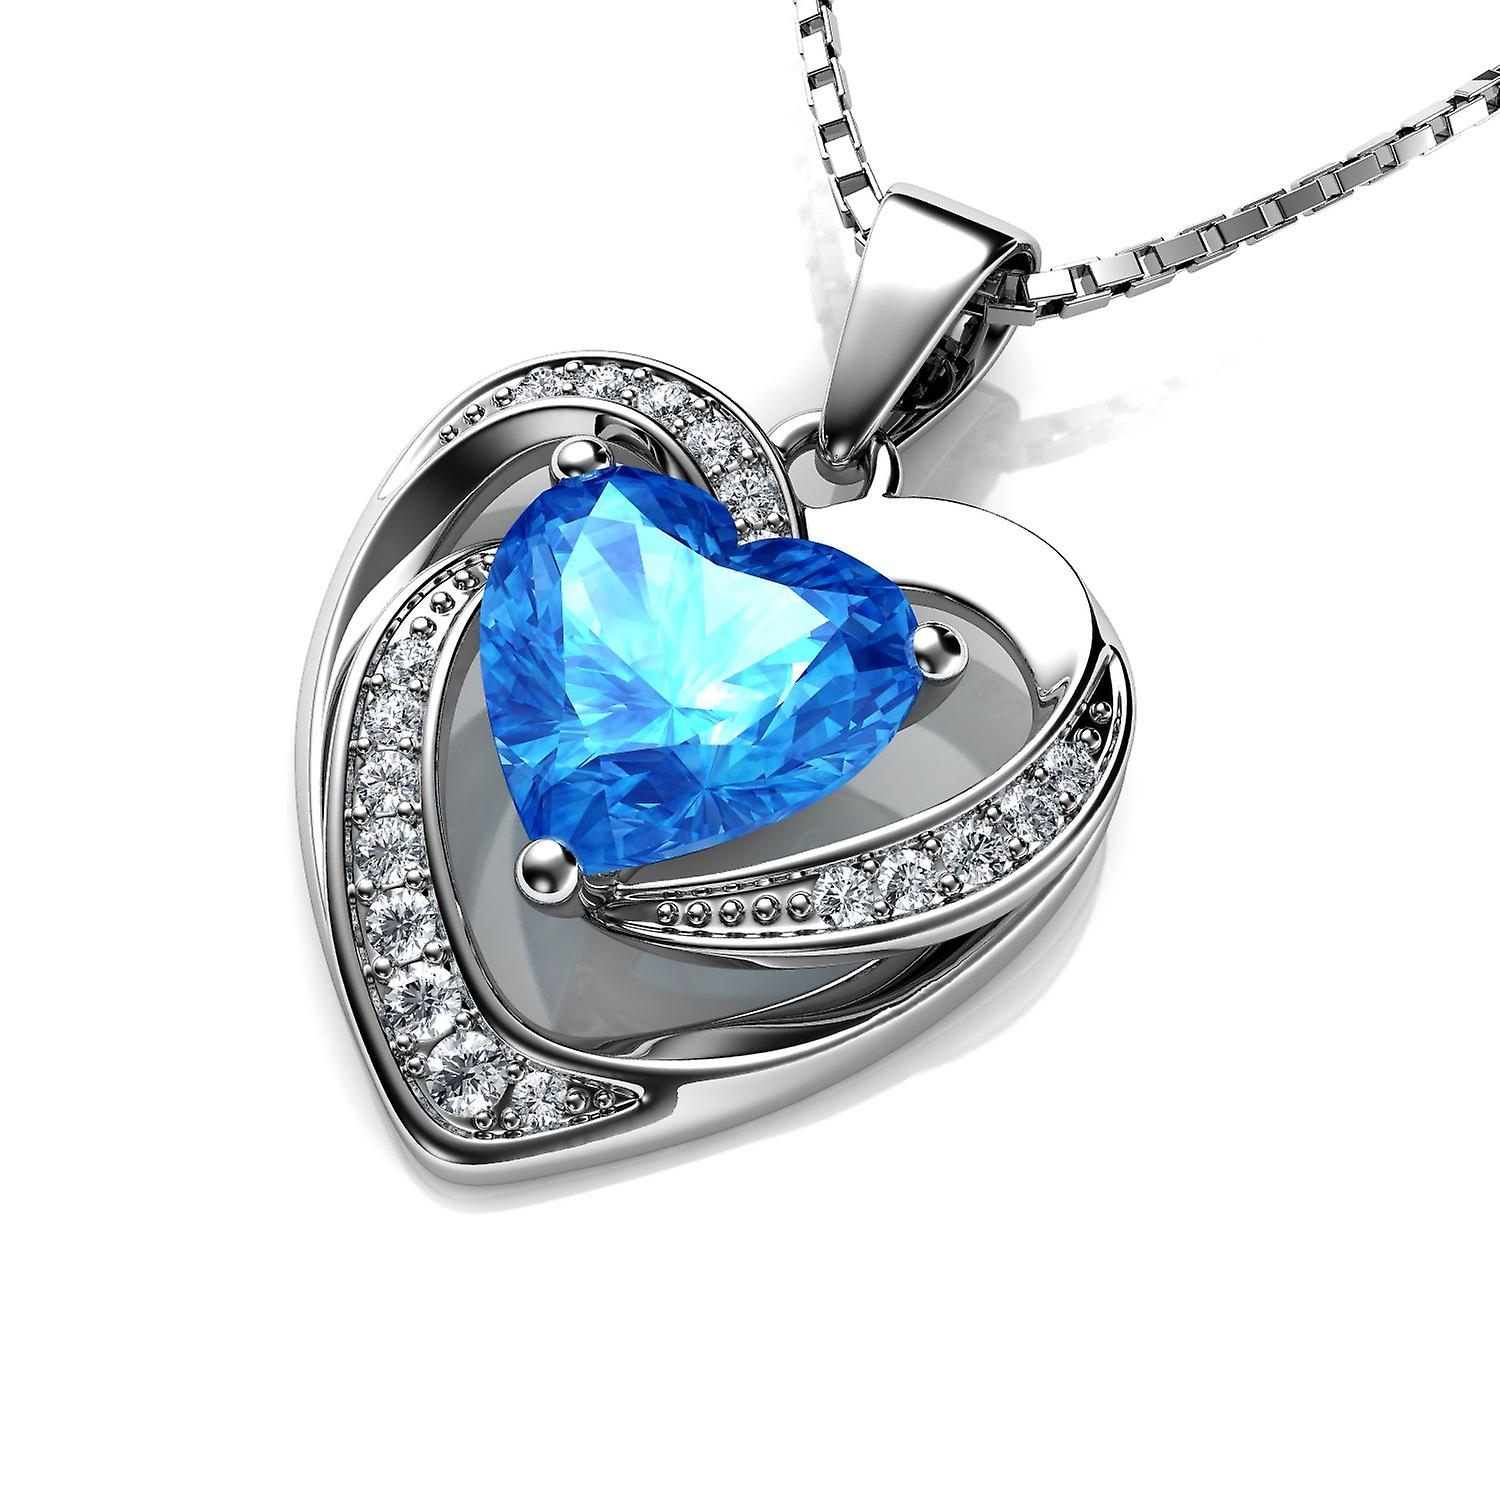 Dephini blue double heart necklace - 925 sterling silver cz crystal